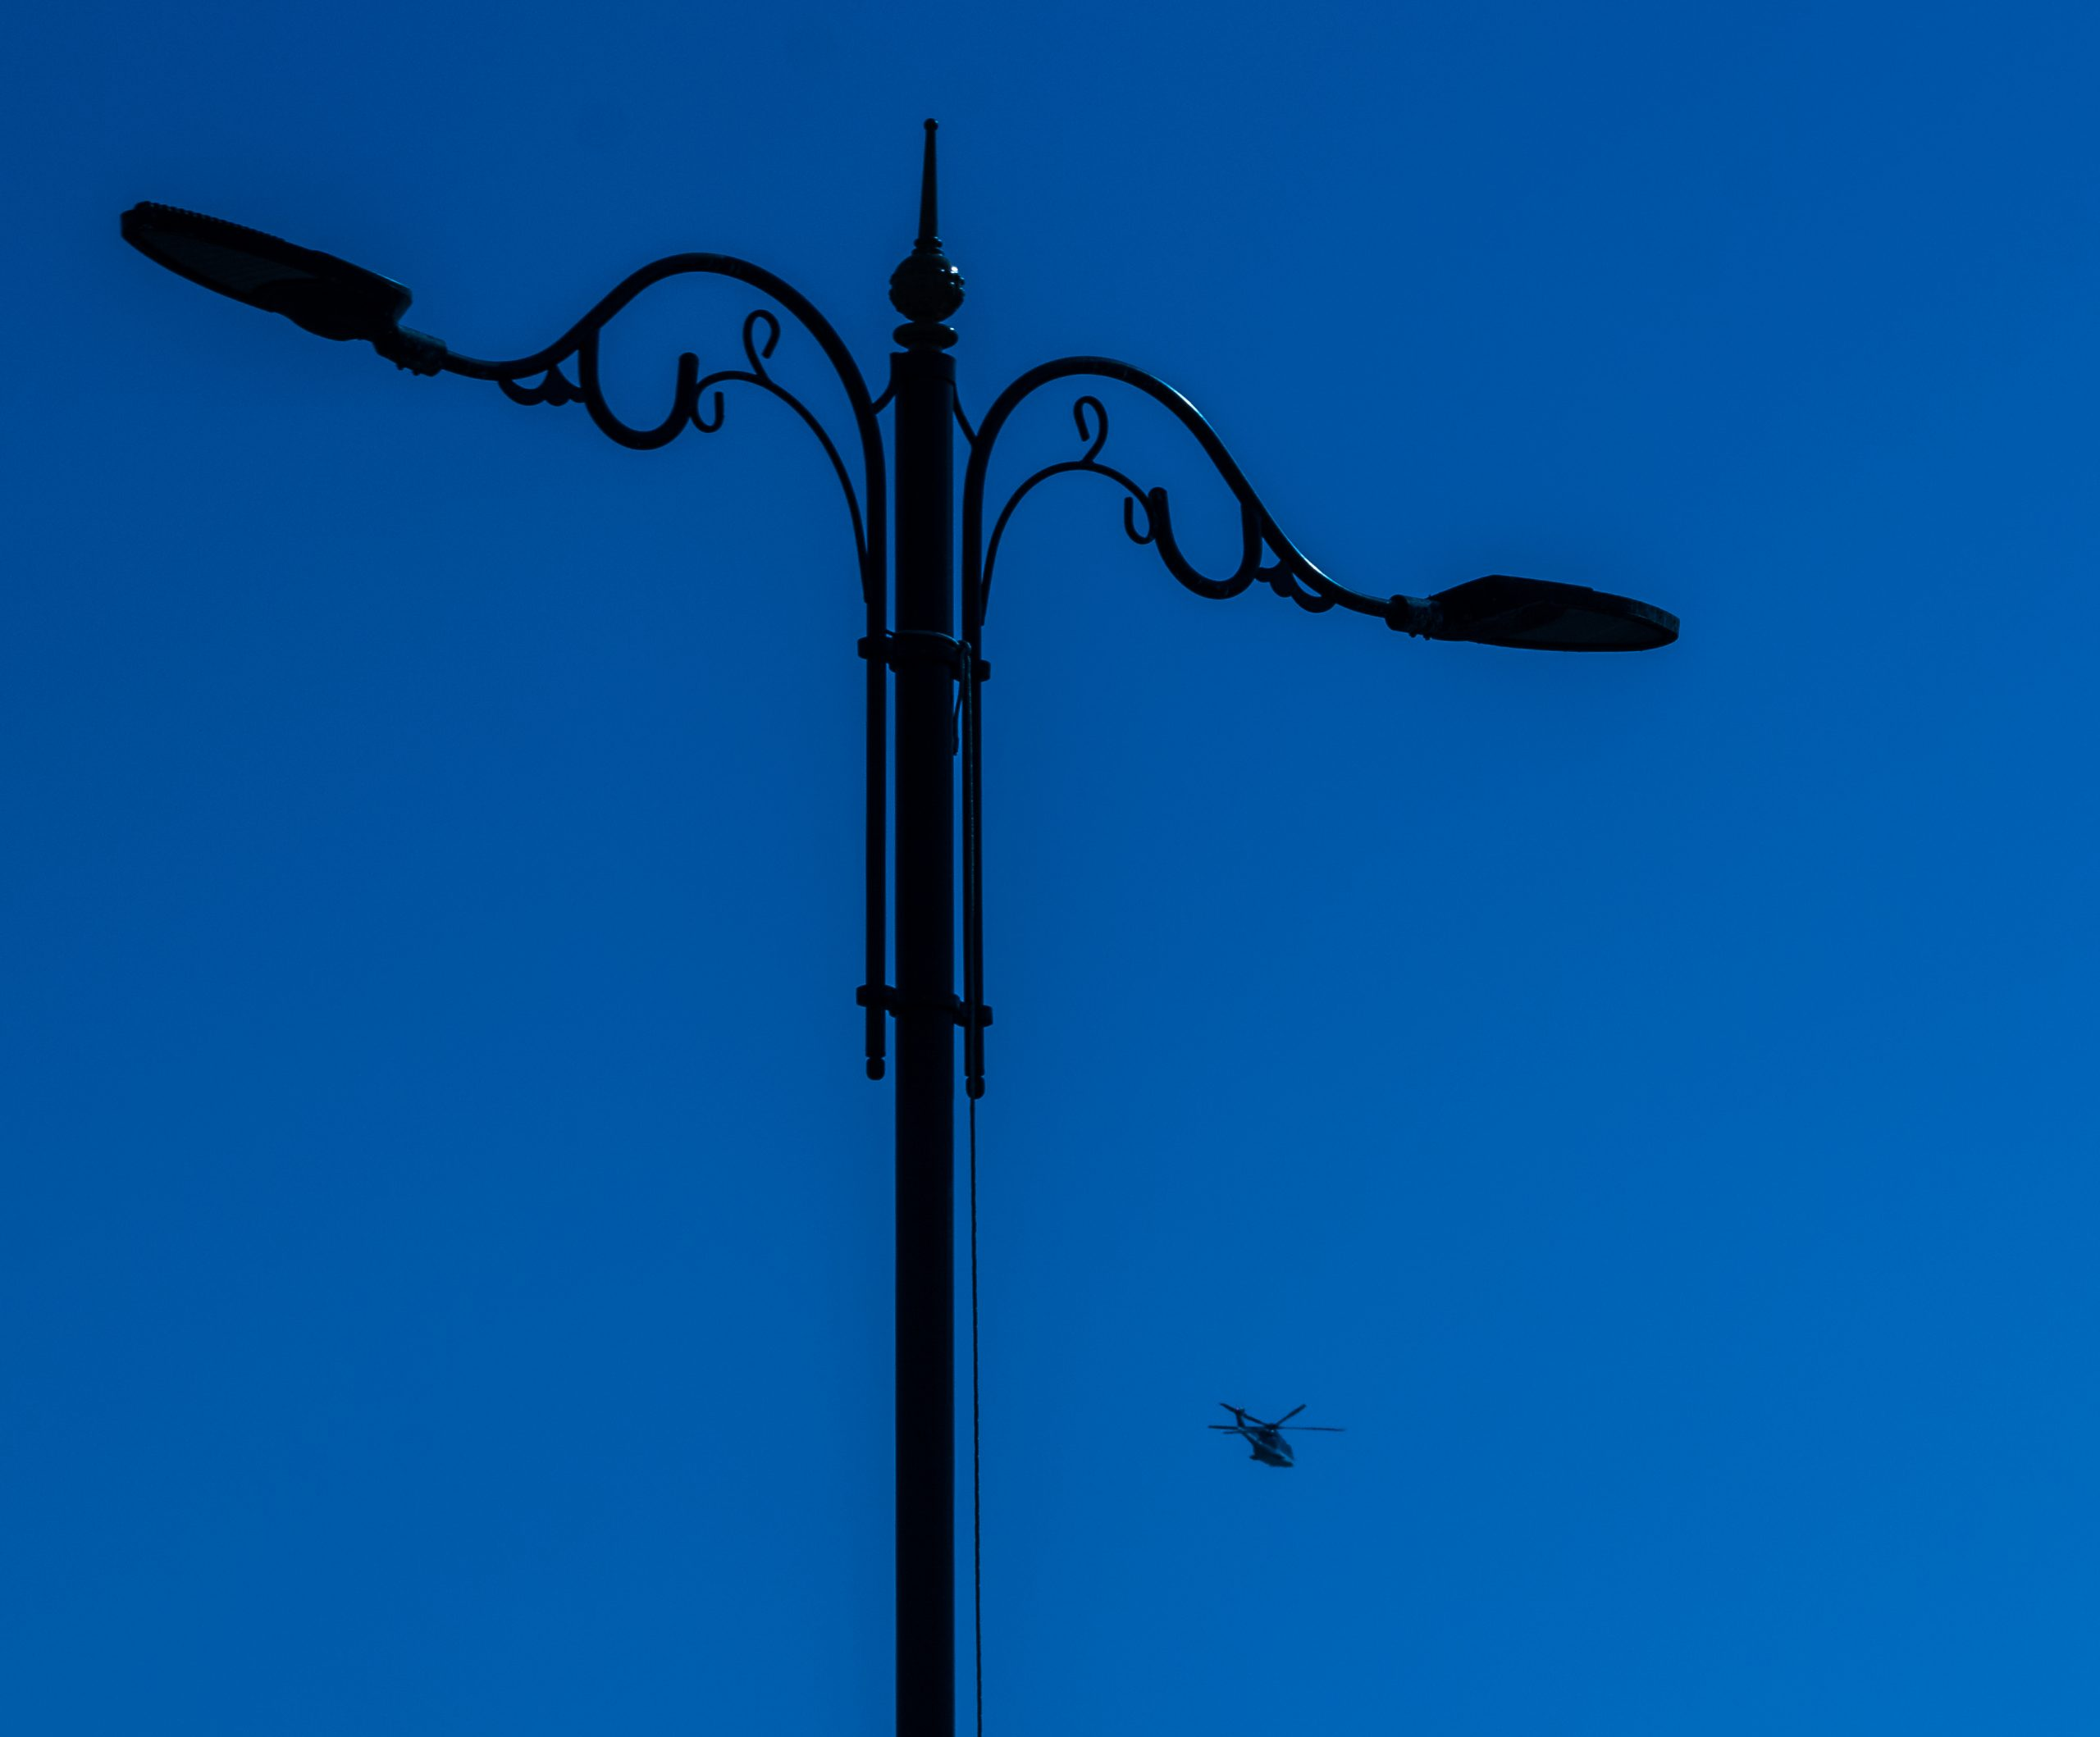 Helicopter visible behind the street lamp